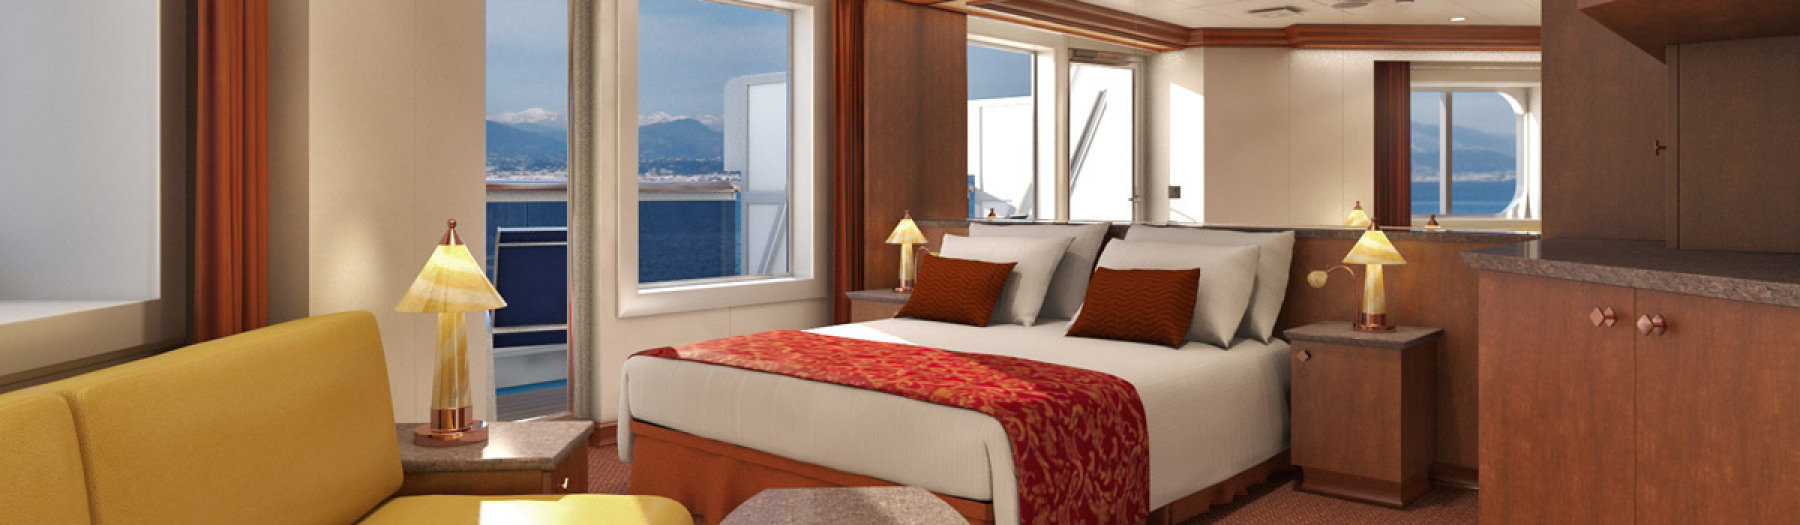 Carnival Cruise Lines Carnival Dream AccommodationJunior Suite.jpg